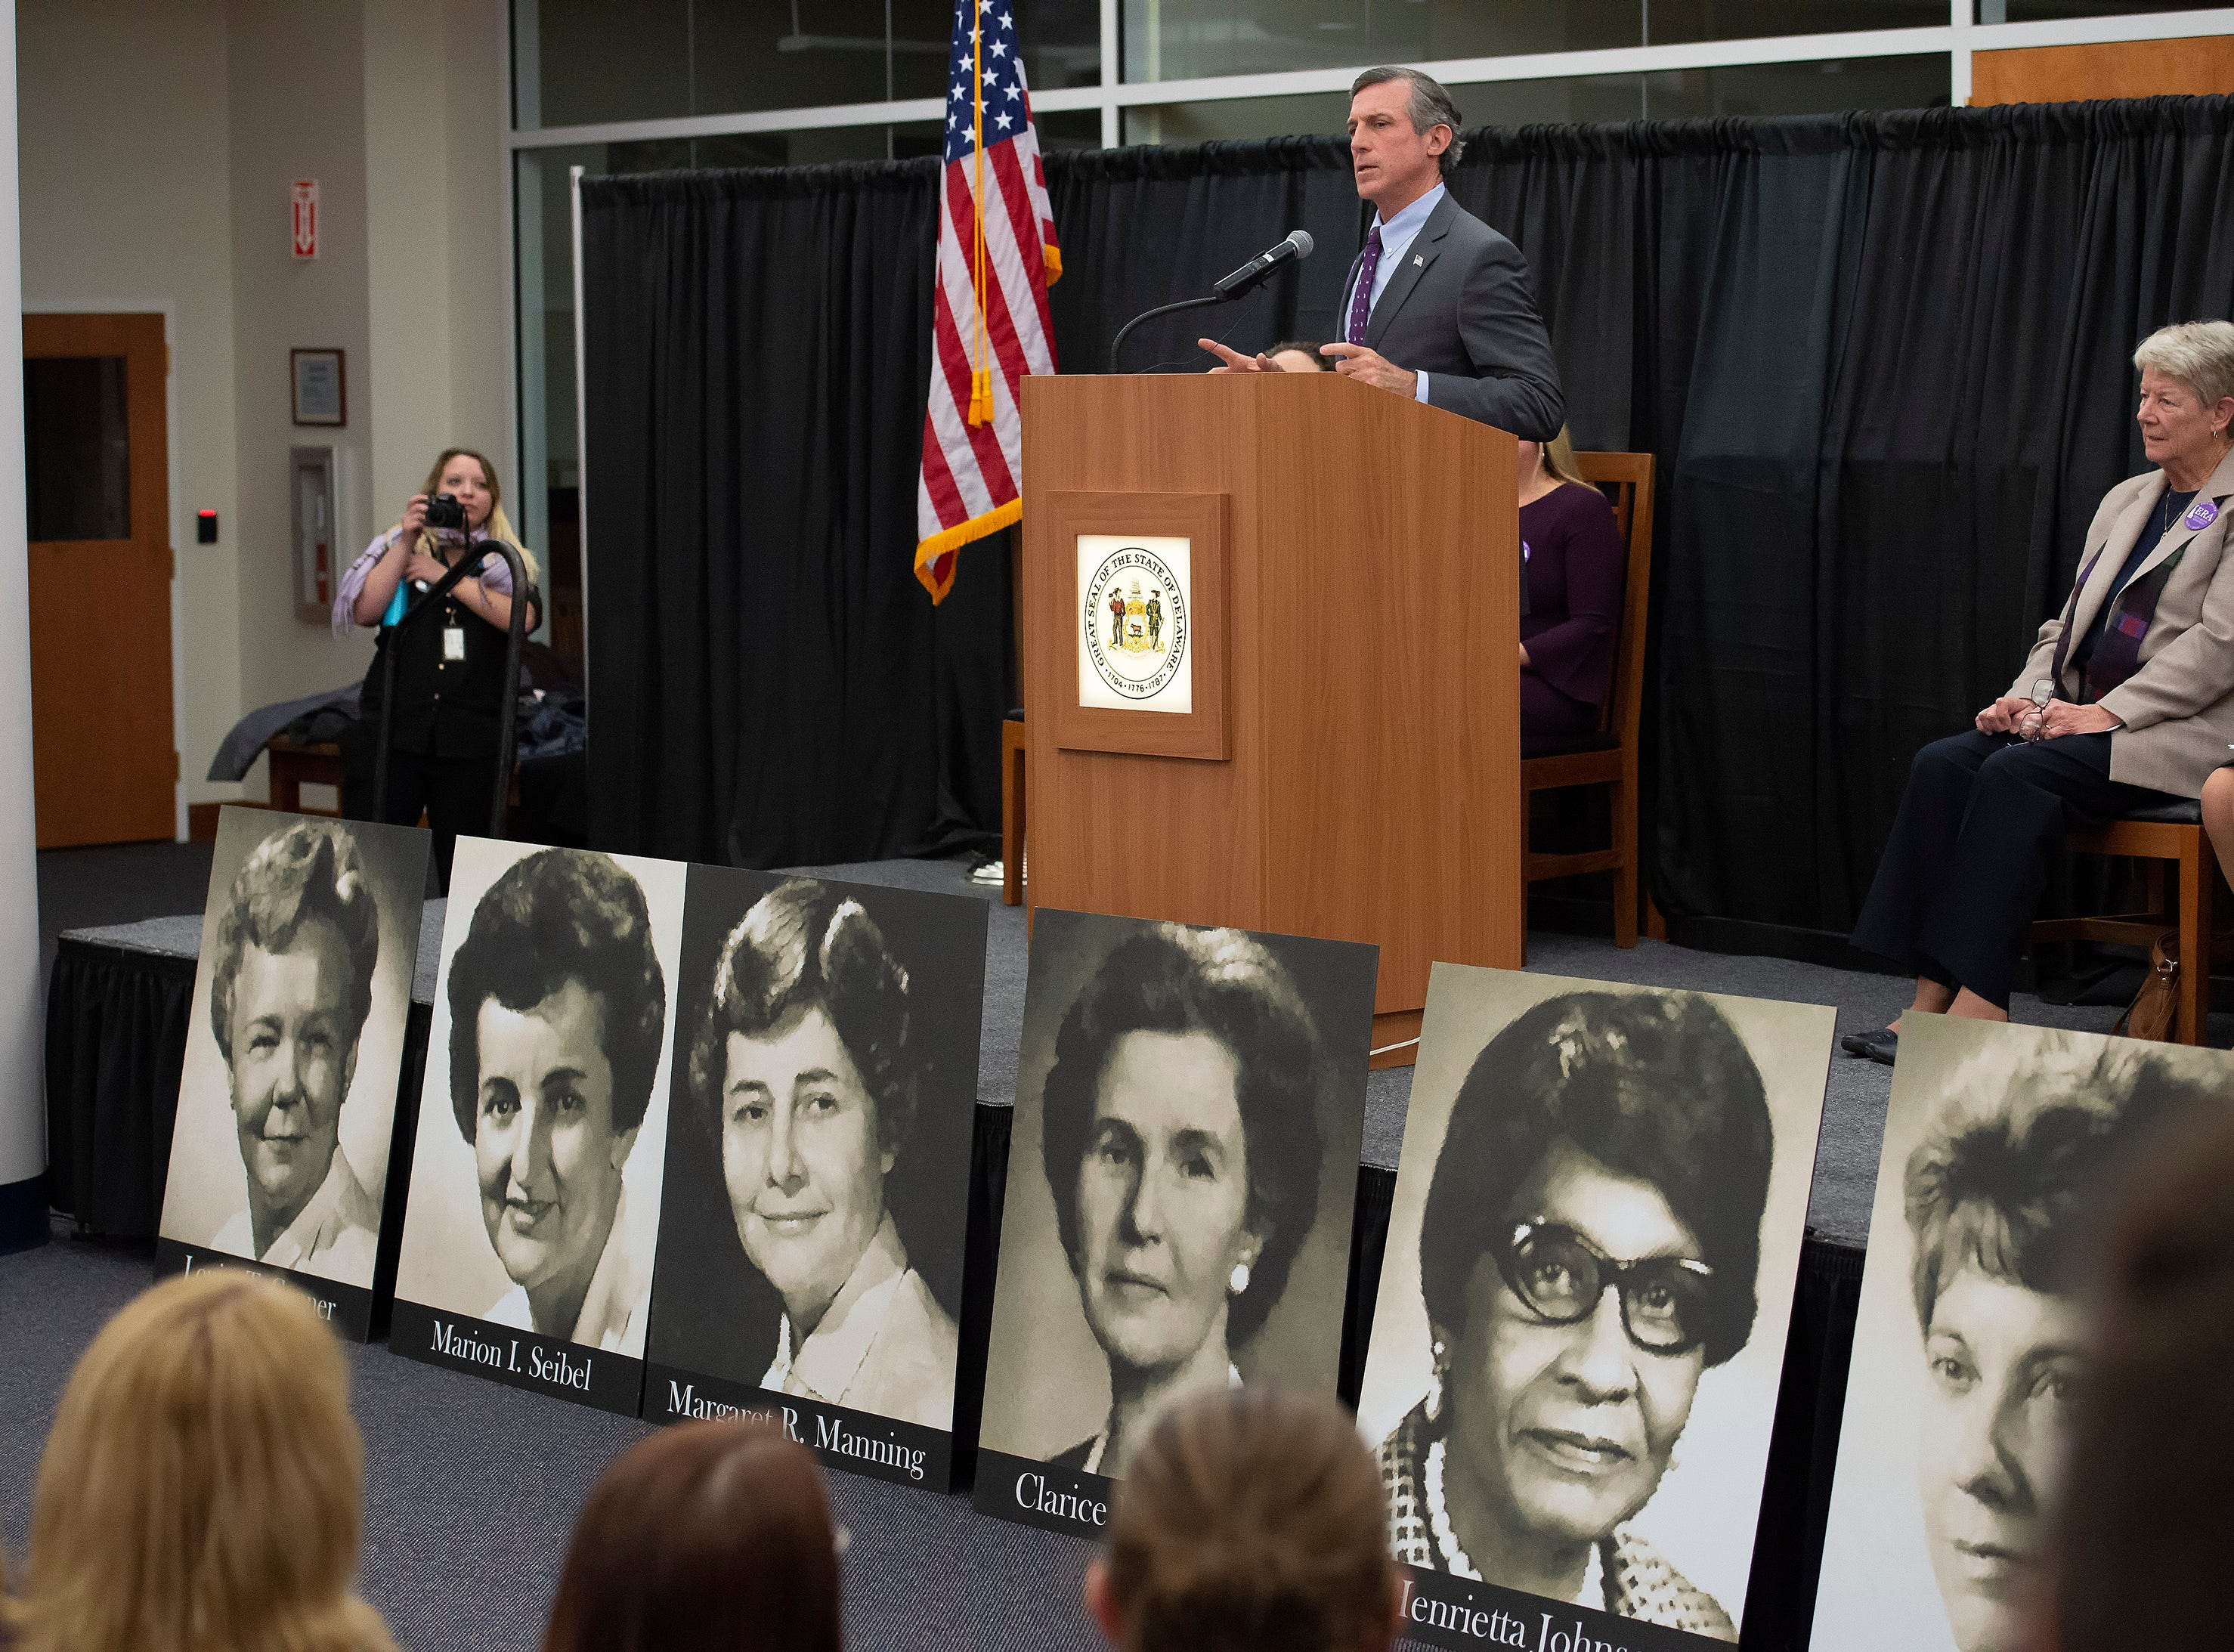 Governor John Carney welcomes everyone to the event at the Delaware Public Archives honoring the women of the 126th General Assembly.